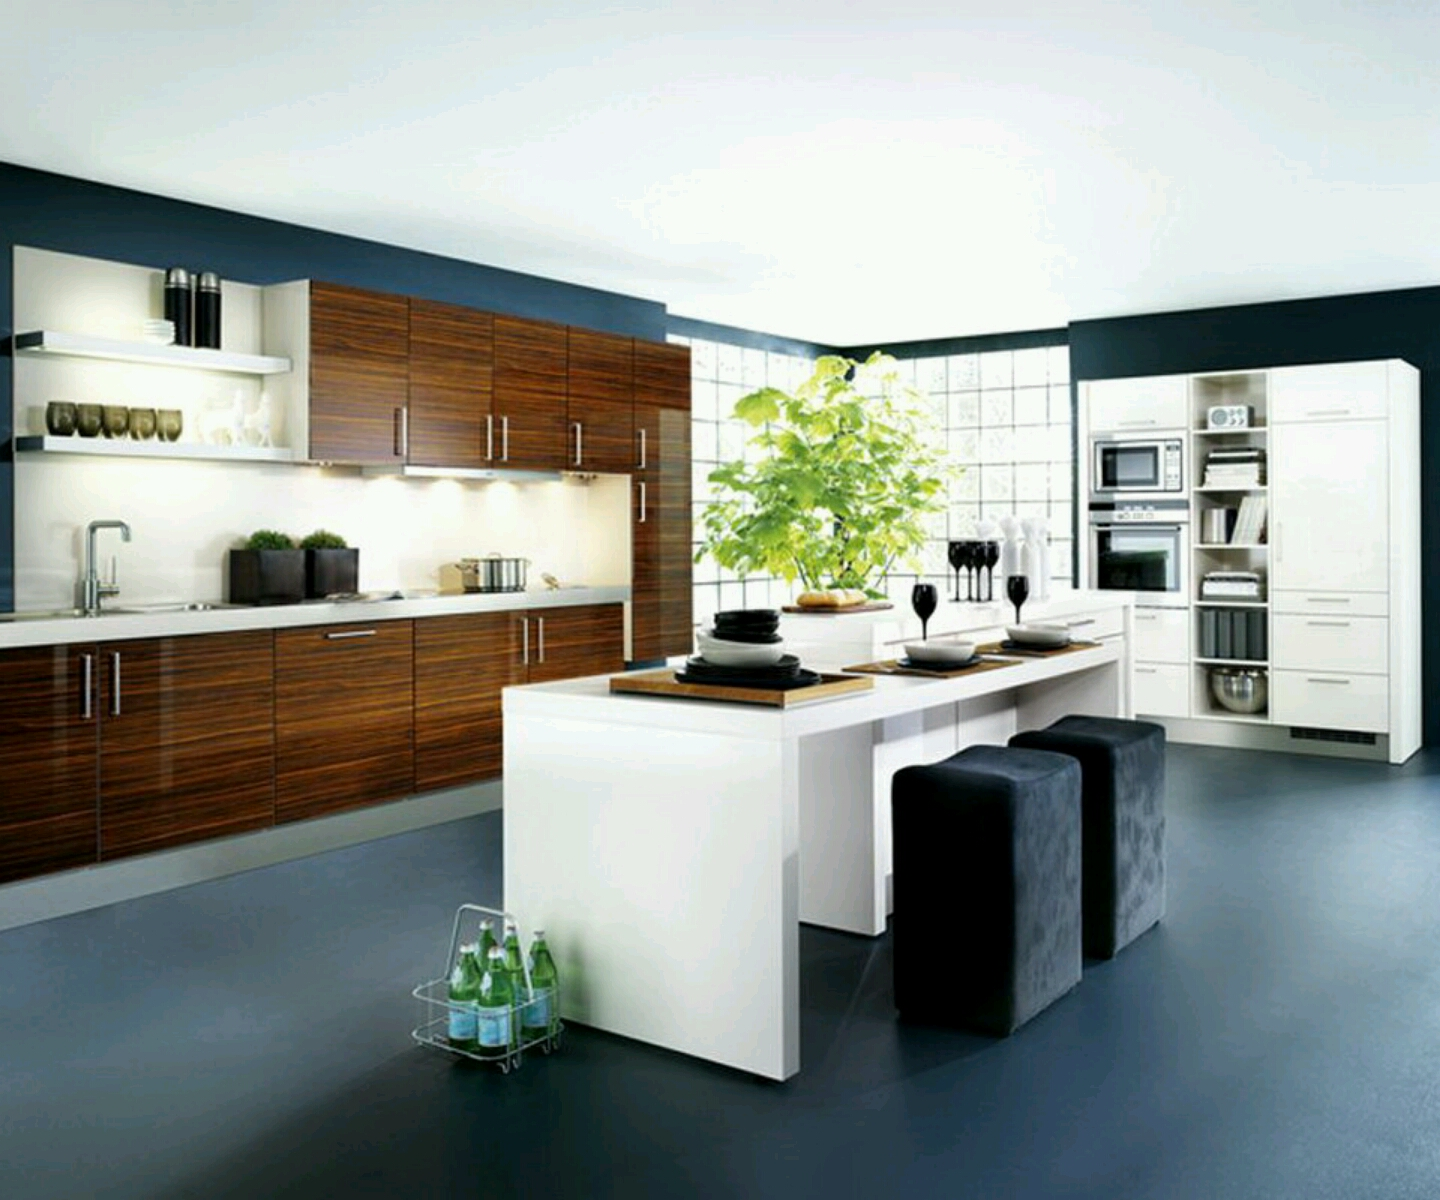 New home designs latest kitchen cabinets designs modern In house kitchen design